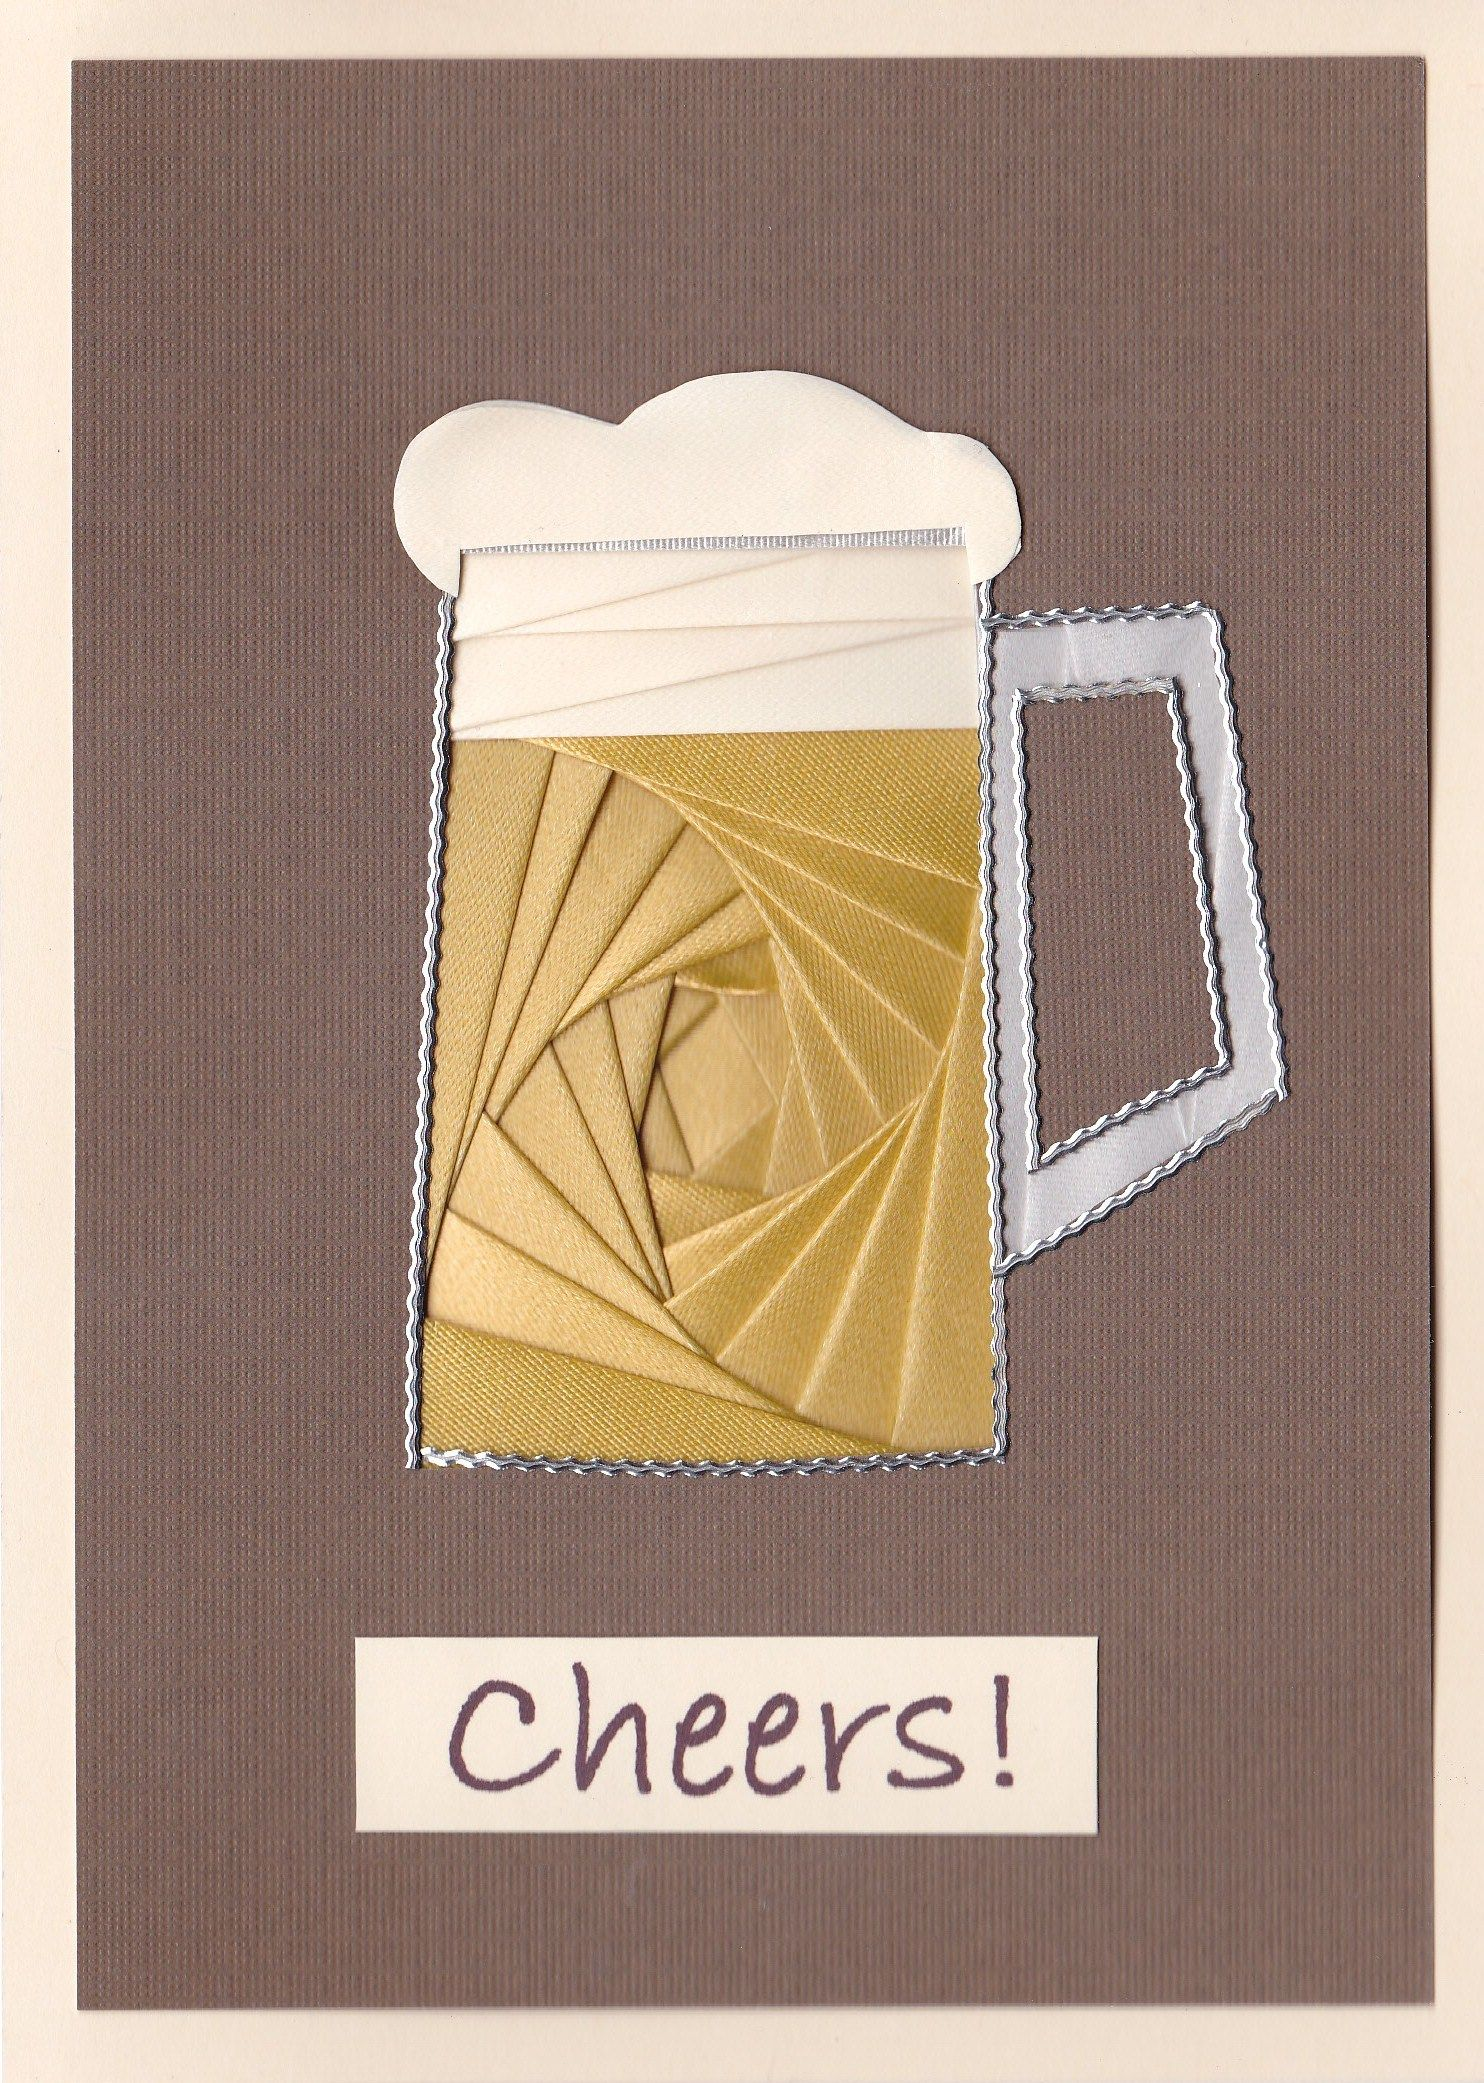 Iris Folded Beer Mug | Iris Folding / Origami | Iris ... - photo#49